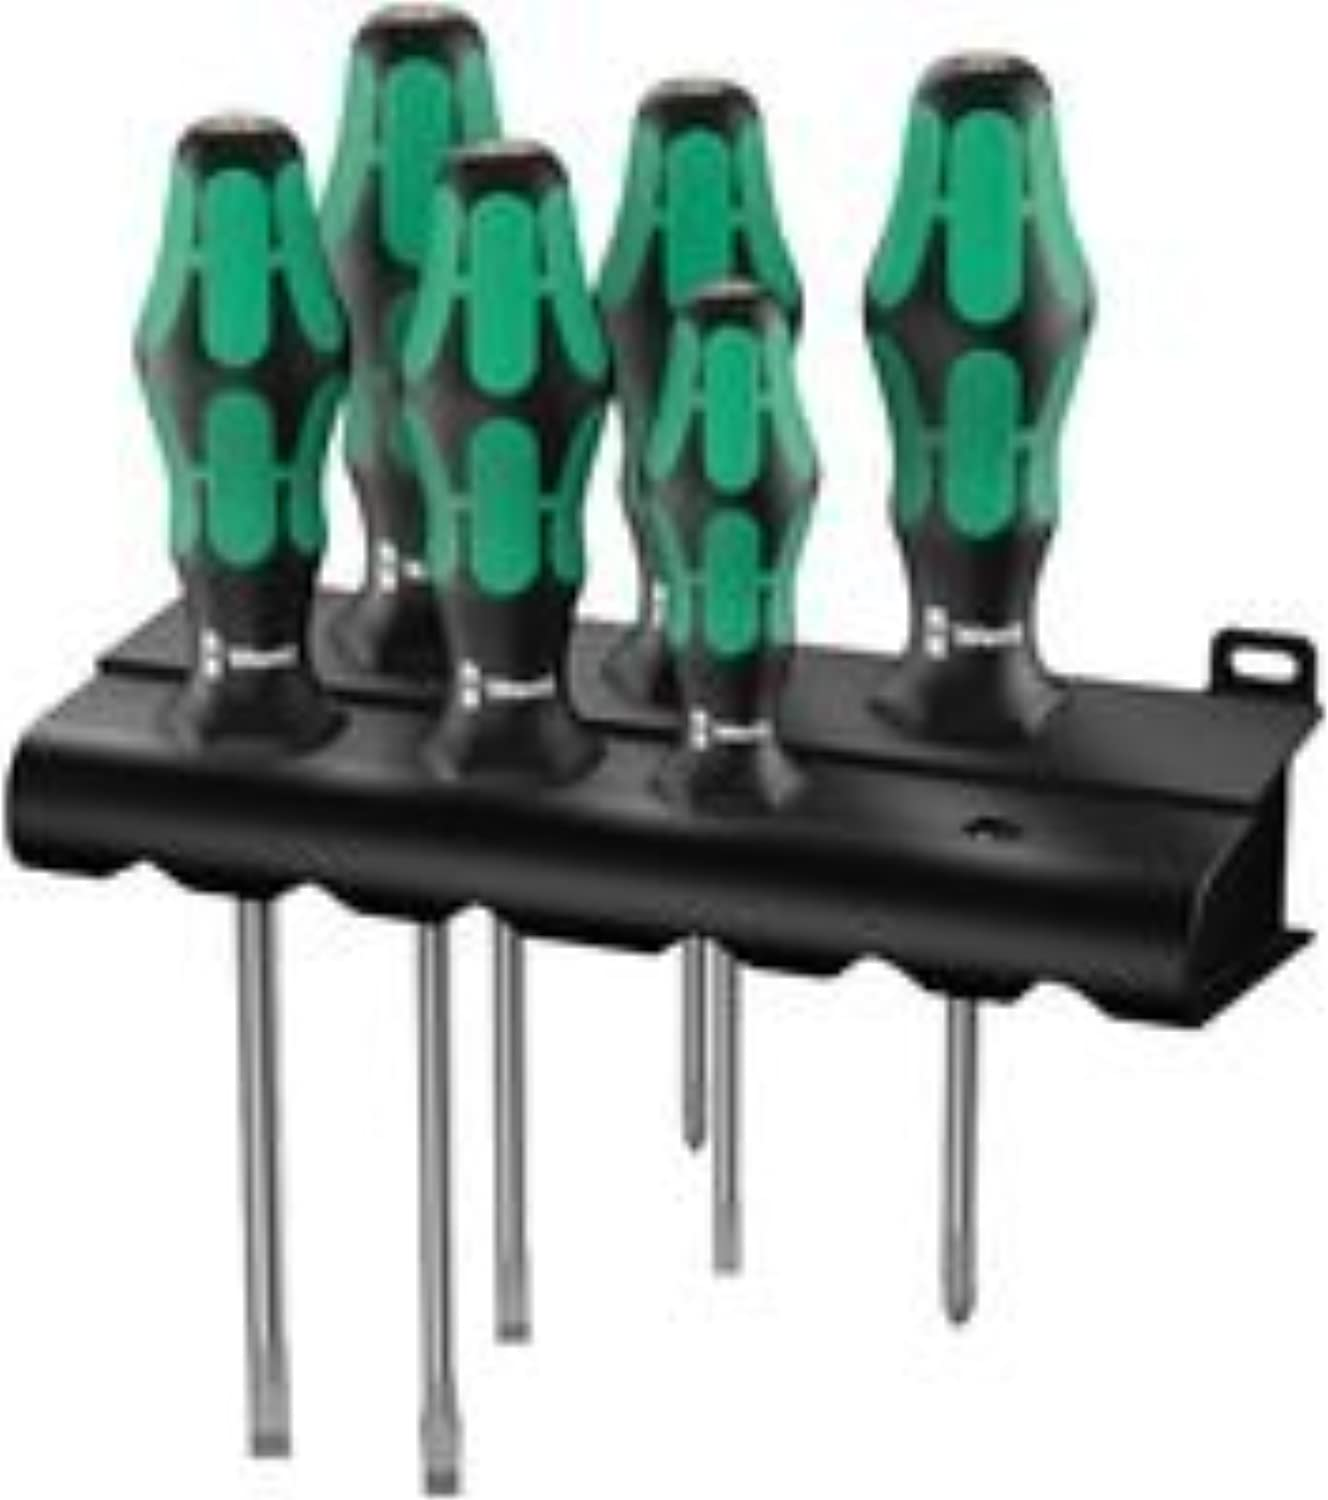 SCREWDRIVER SET, SLOTTED POZI, 6PC 105656 105656 105656 By WERA B011870X78 | Offizielle